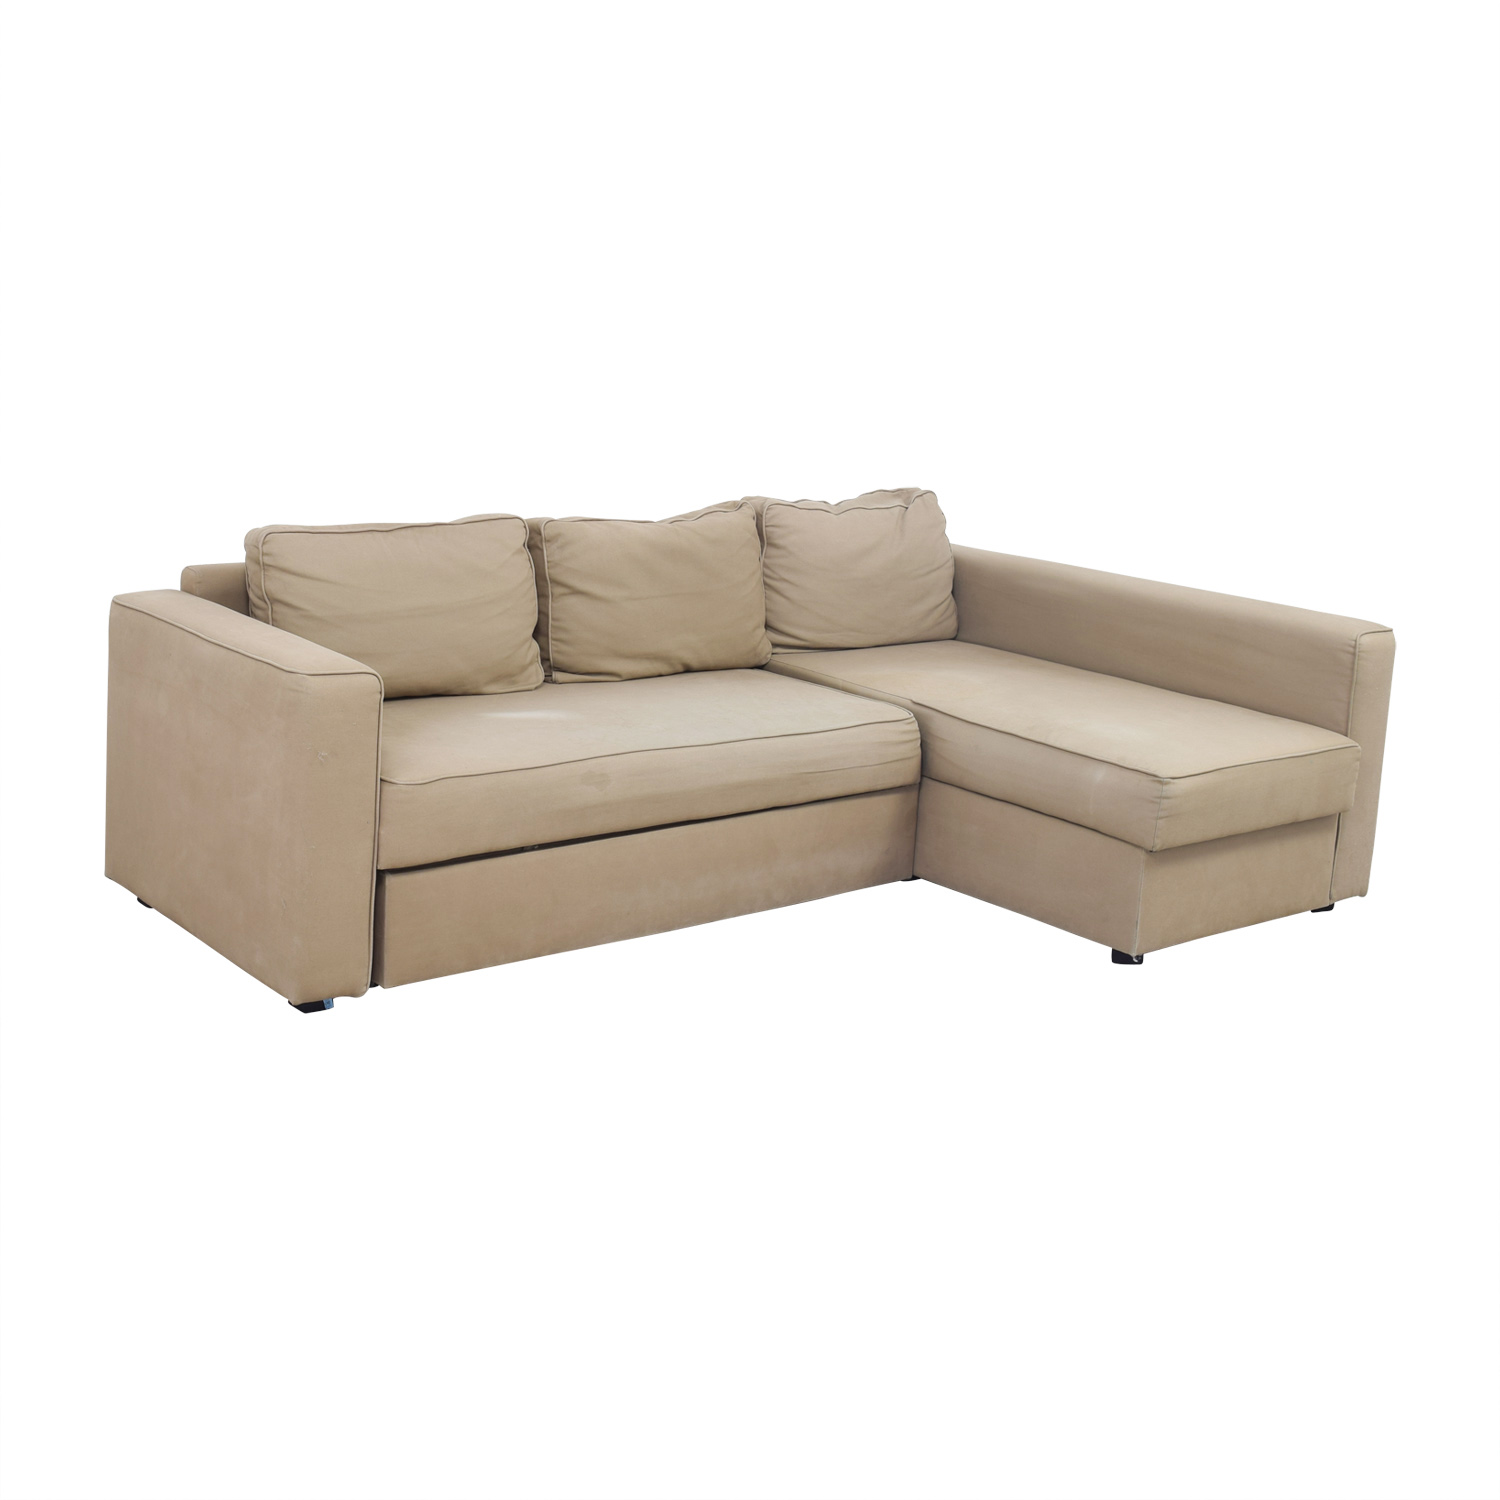 62% OFF - IKEA IKEA Manstad Sectional Sofa Bed with ...